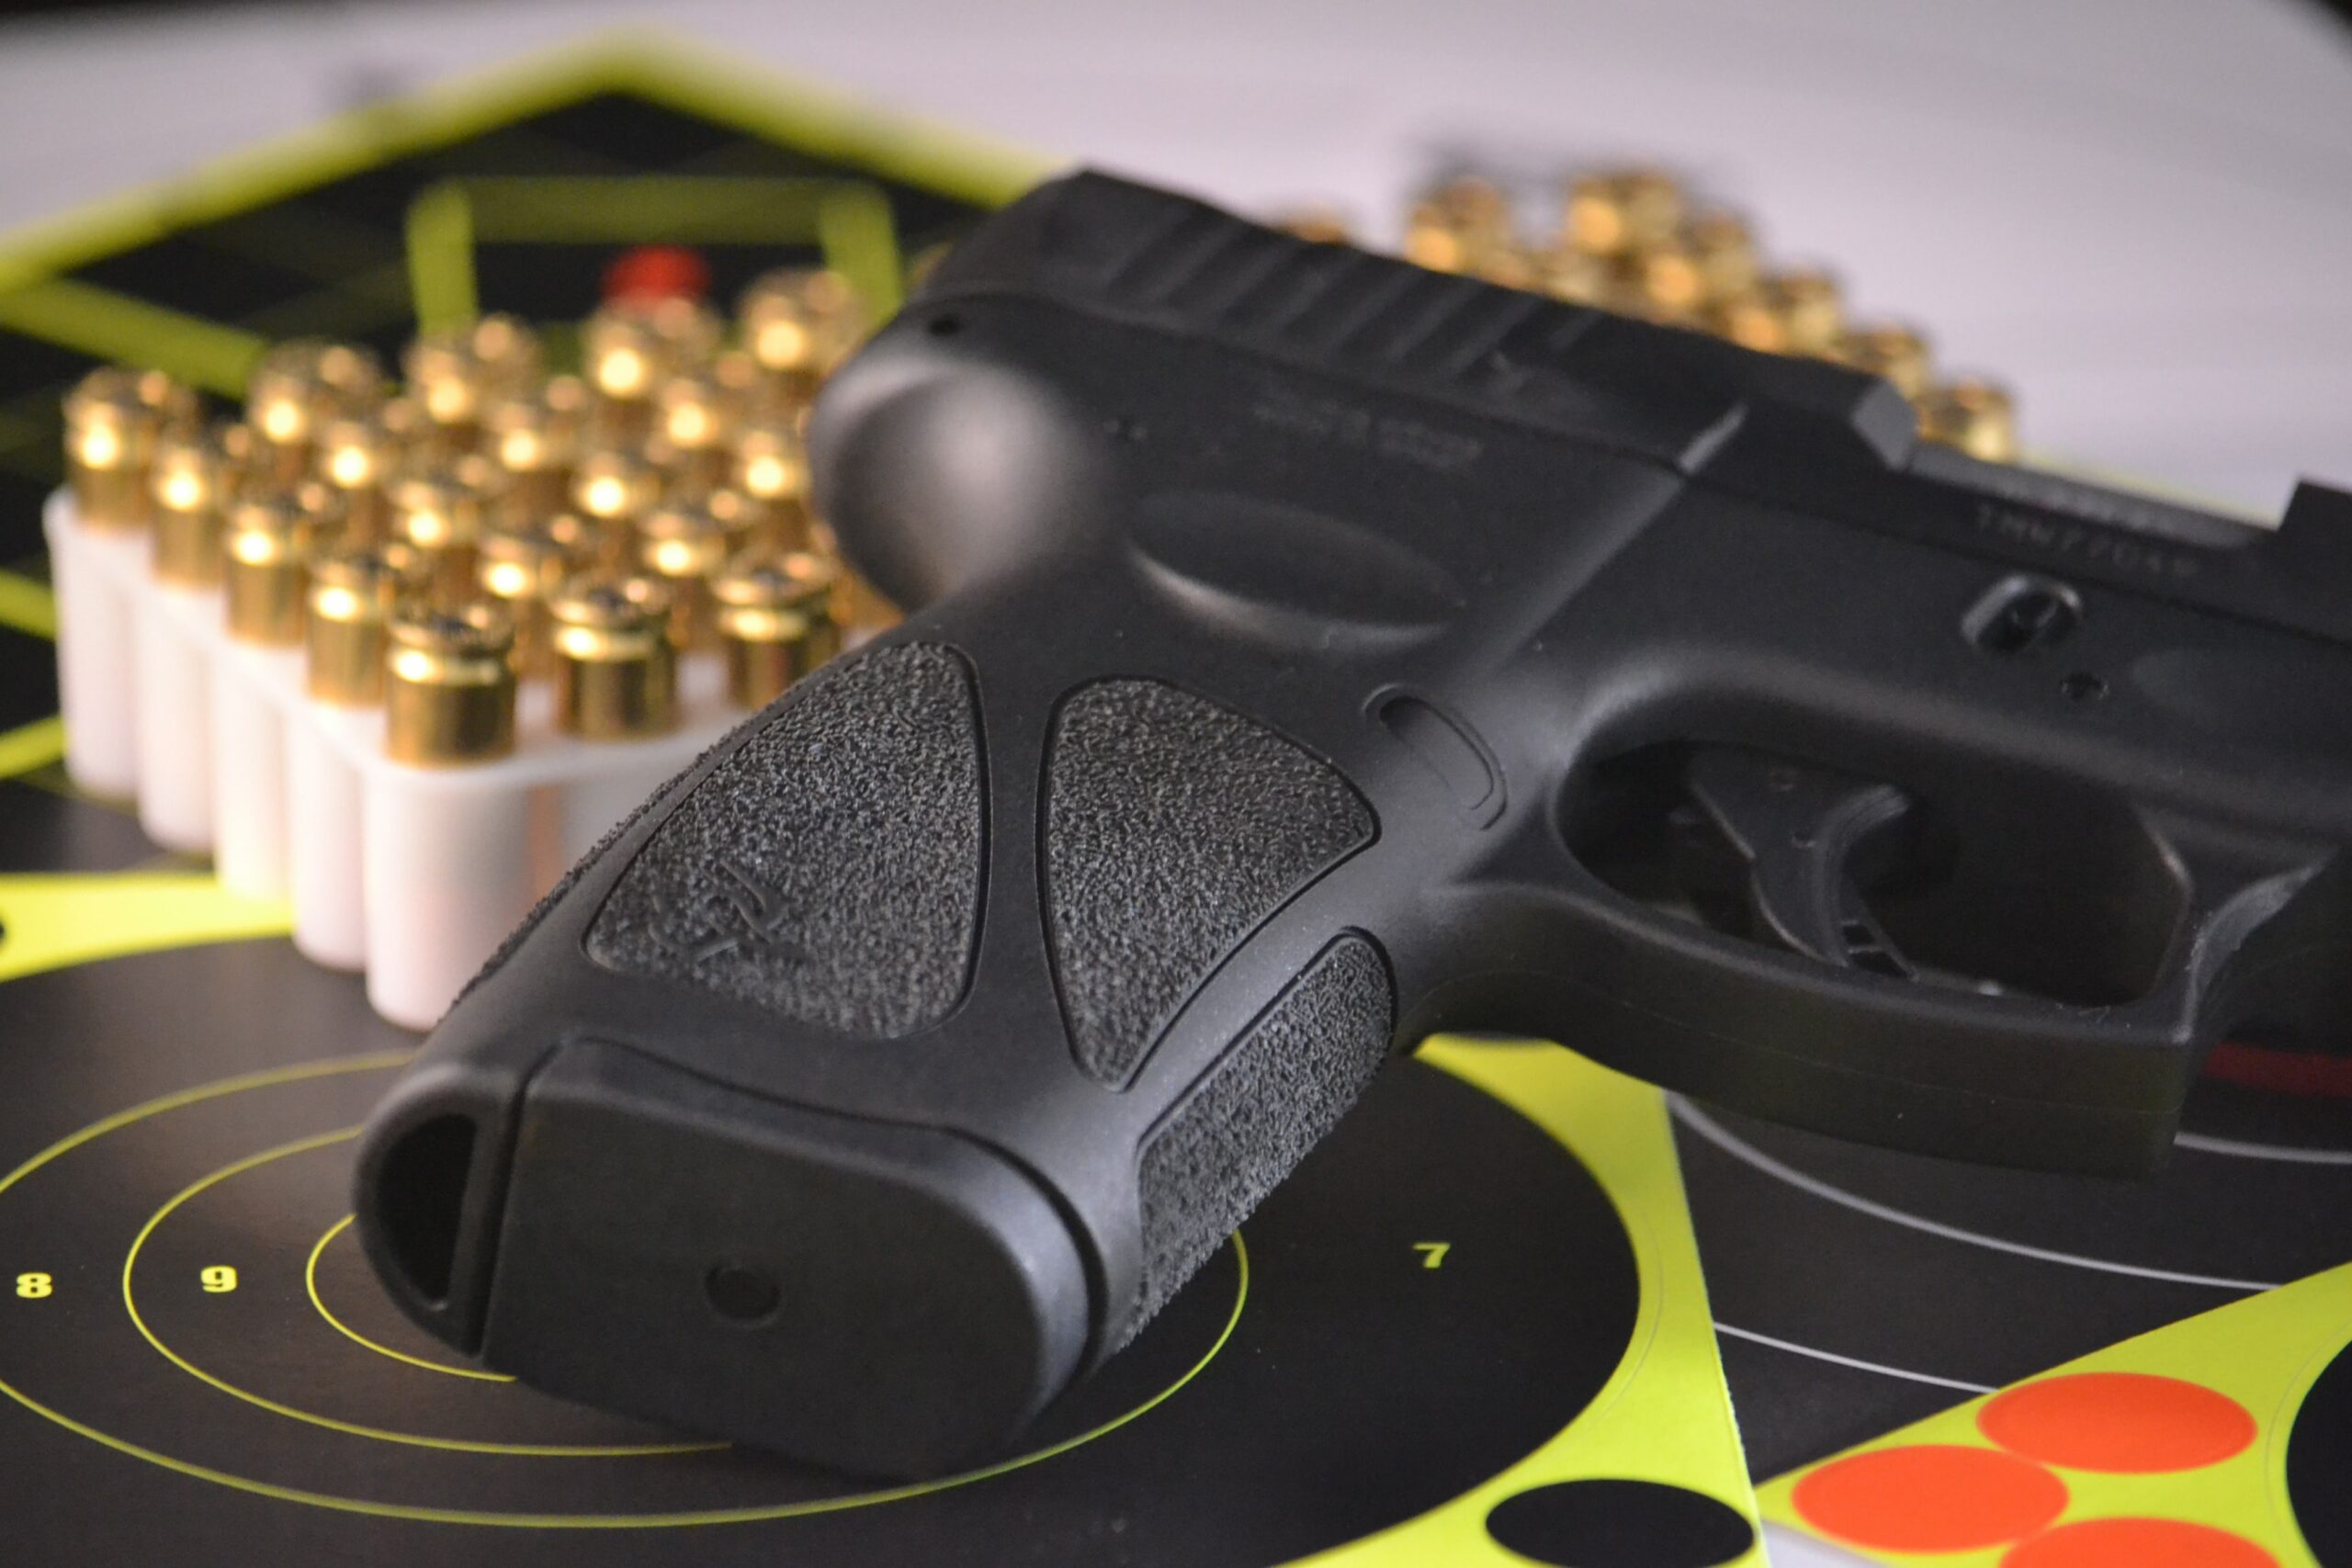 What Do Concealed Carry Statistics Tell Us?